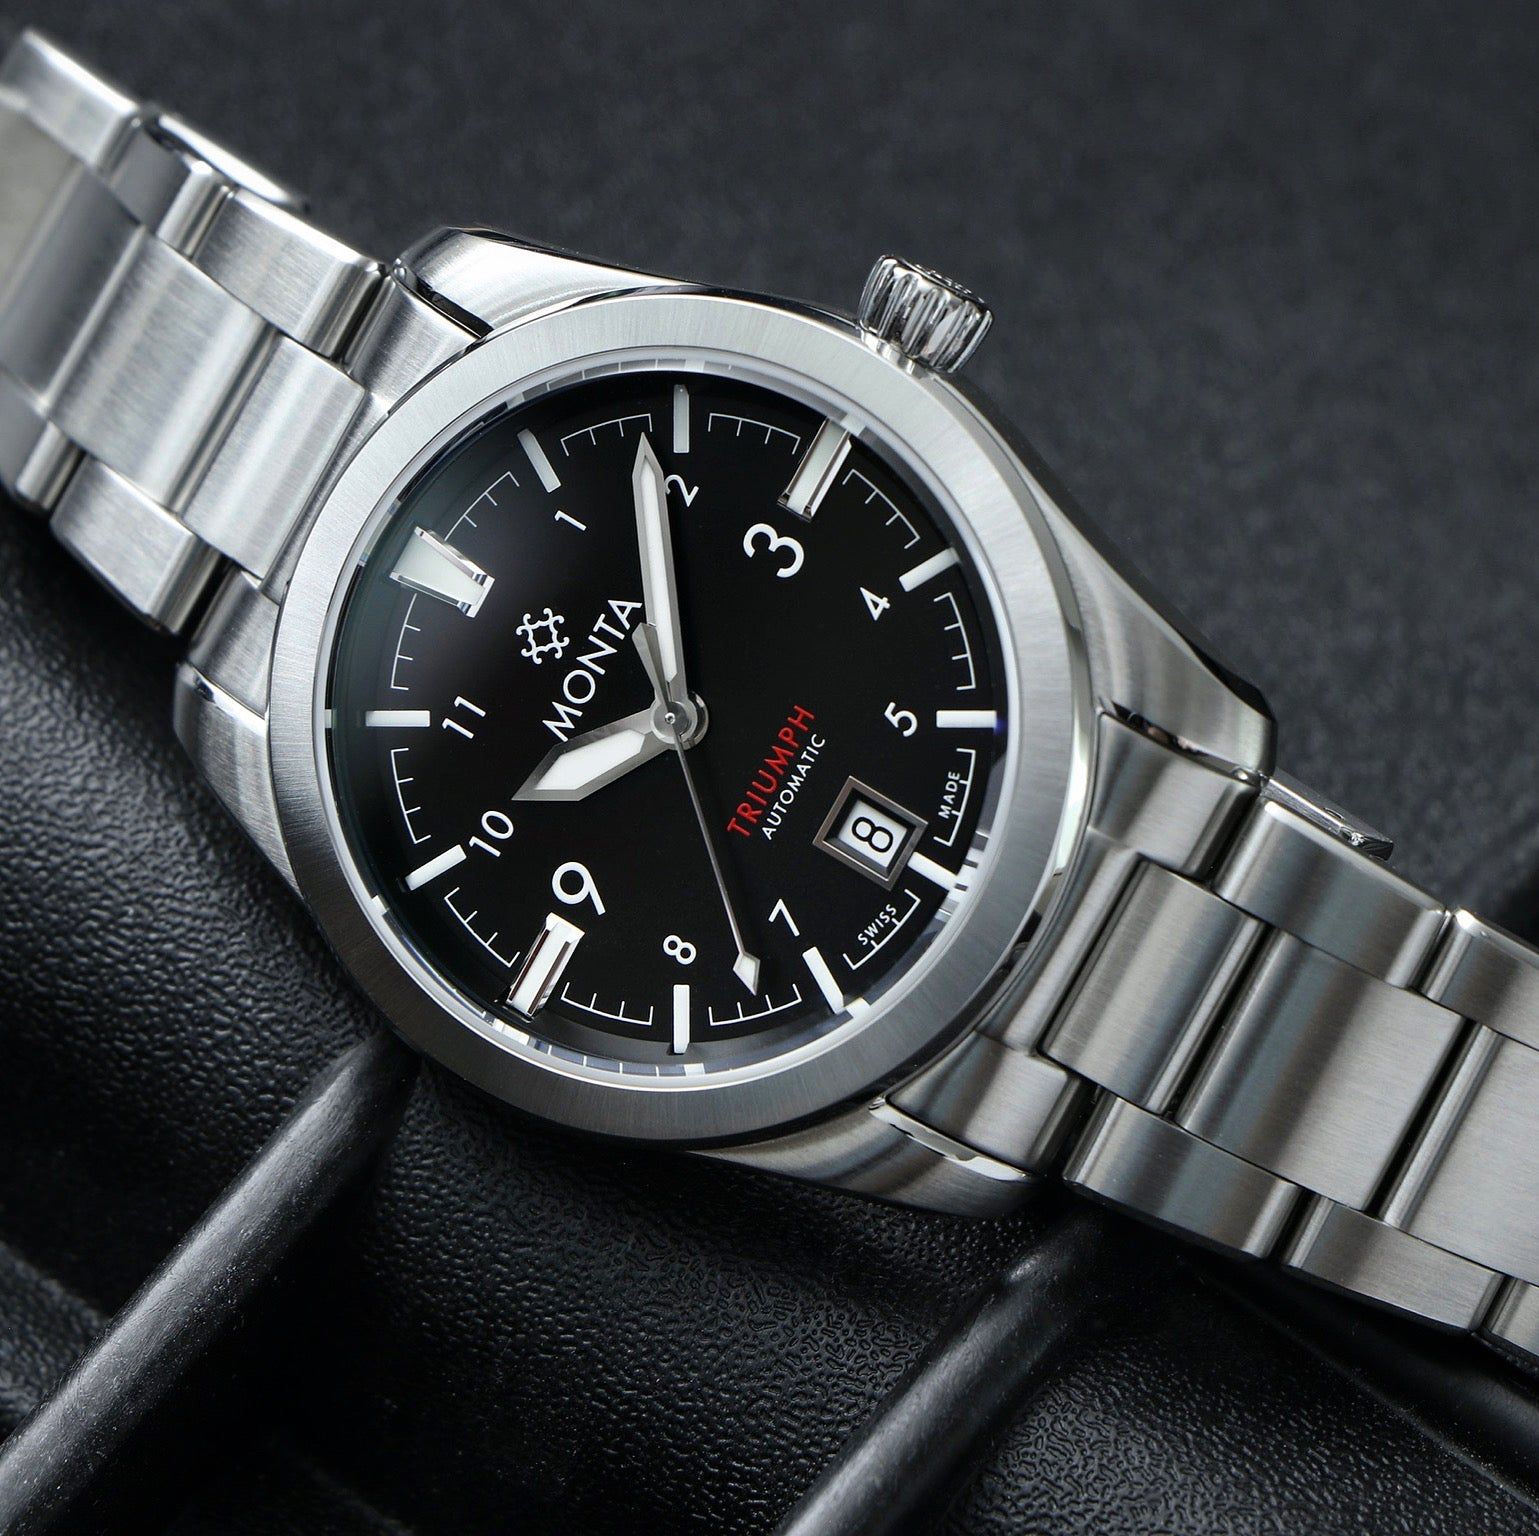 monta triumph watch with black dial